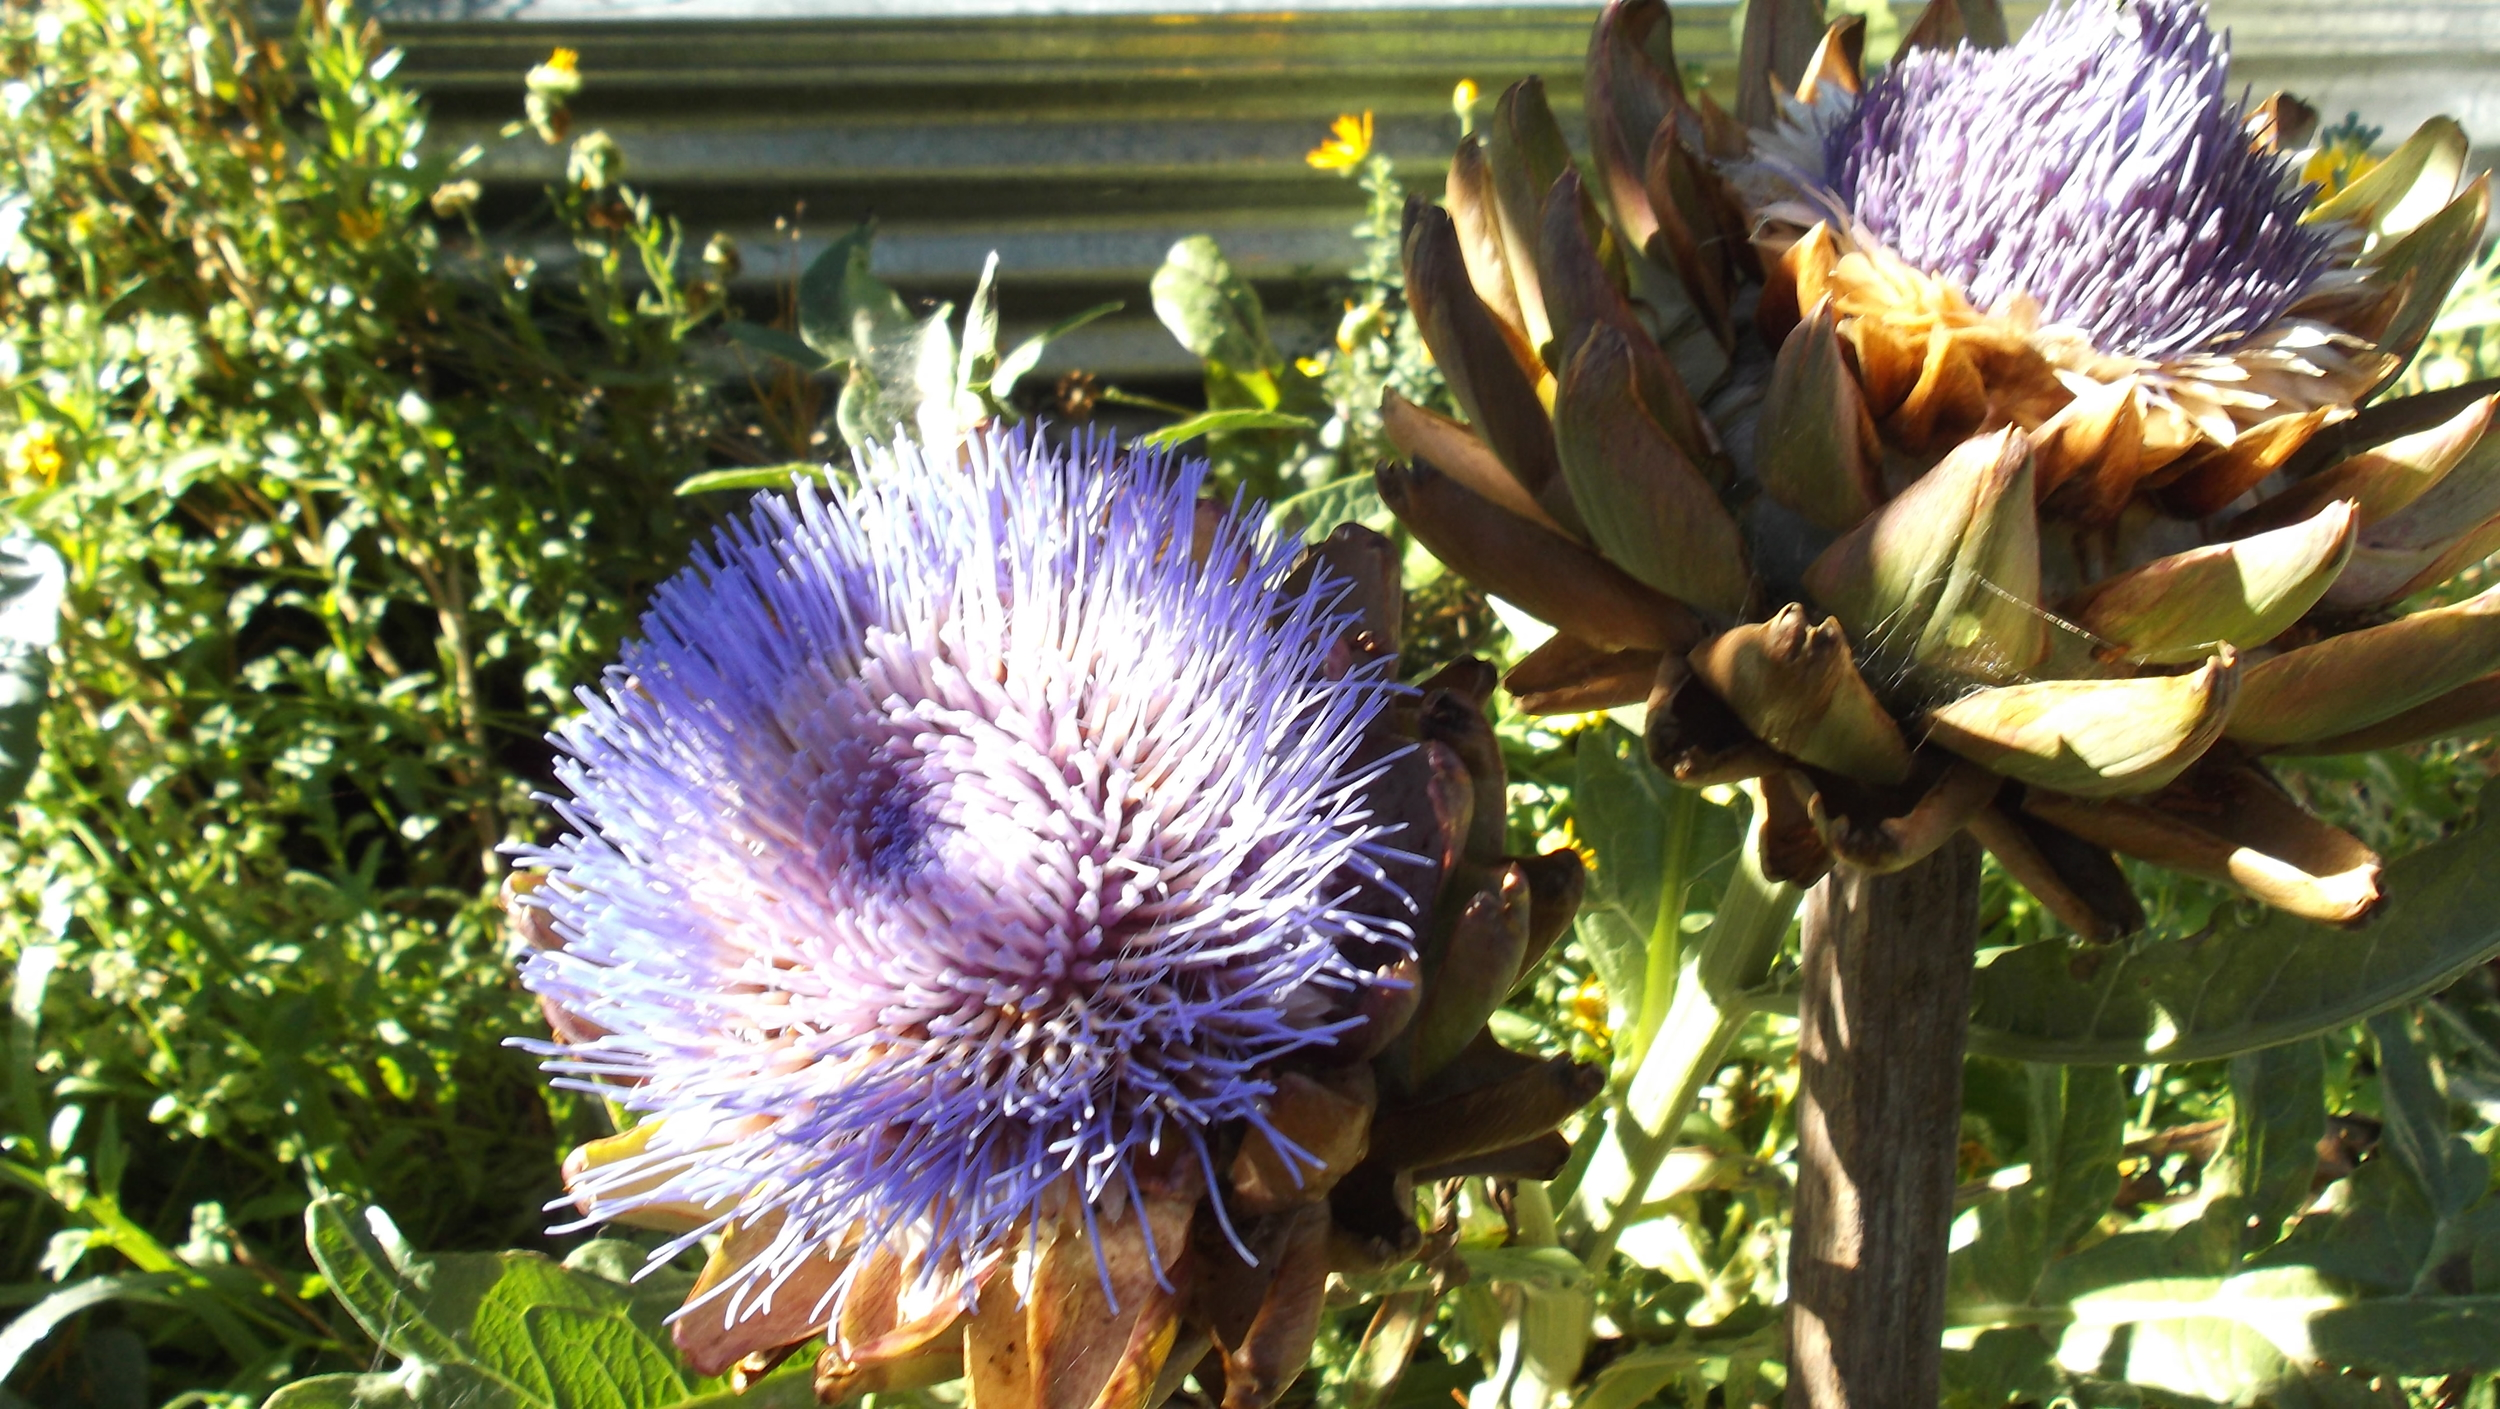 """Artichokes in the morning sun"" by The Grange Permaculture Garden"